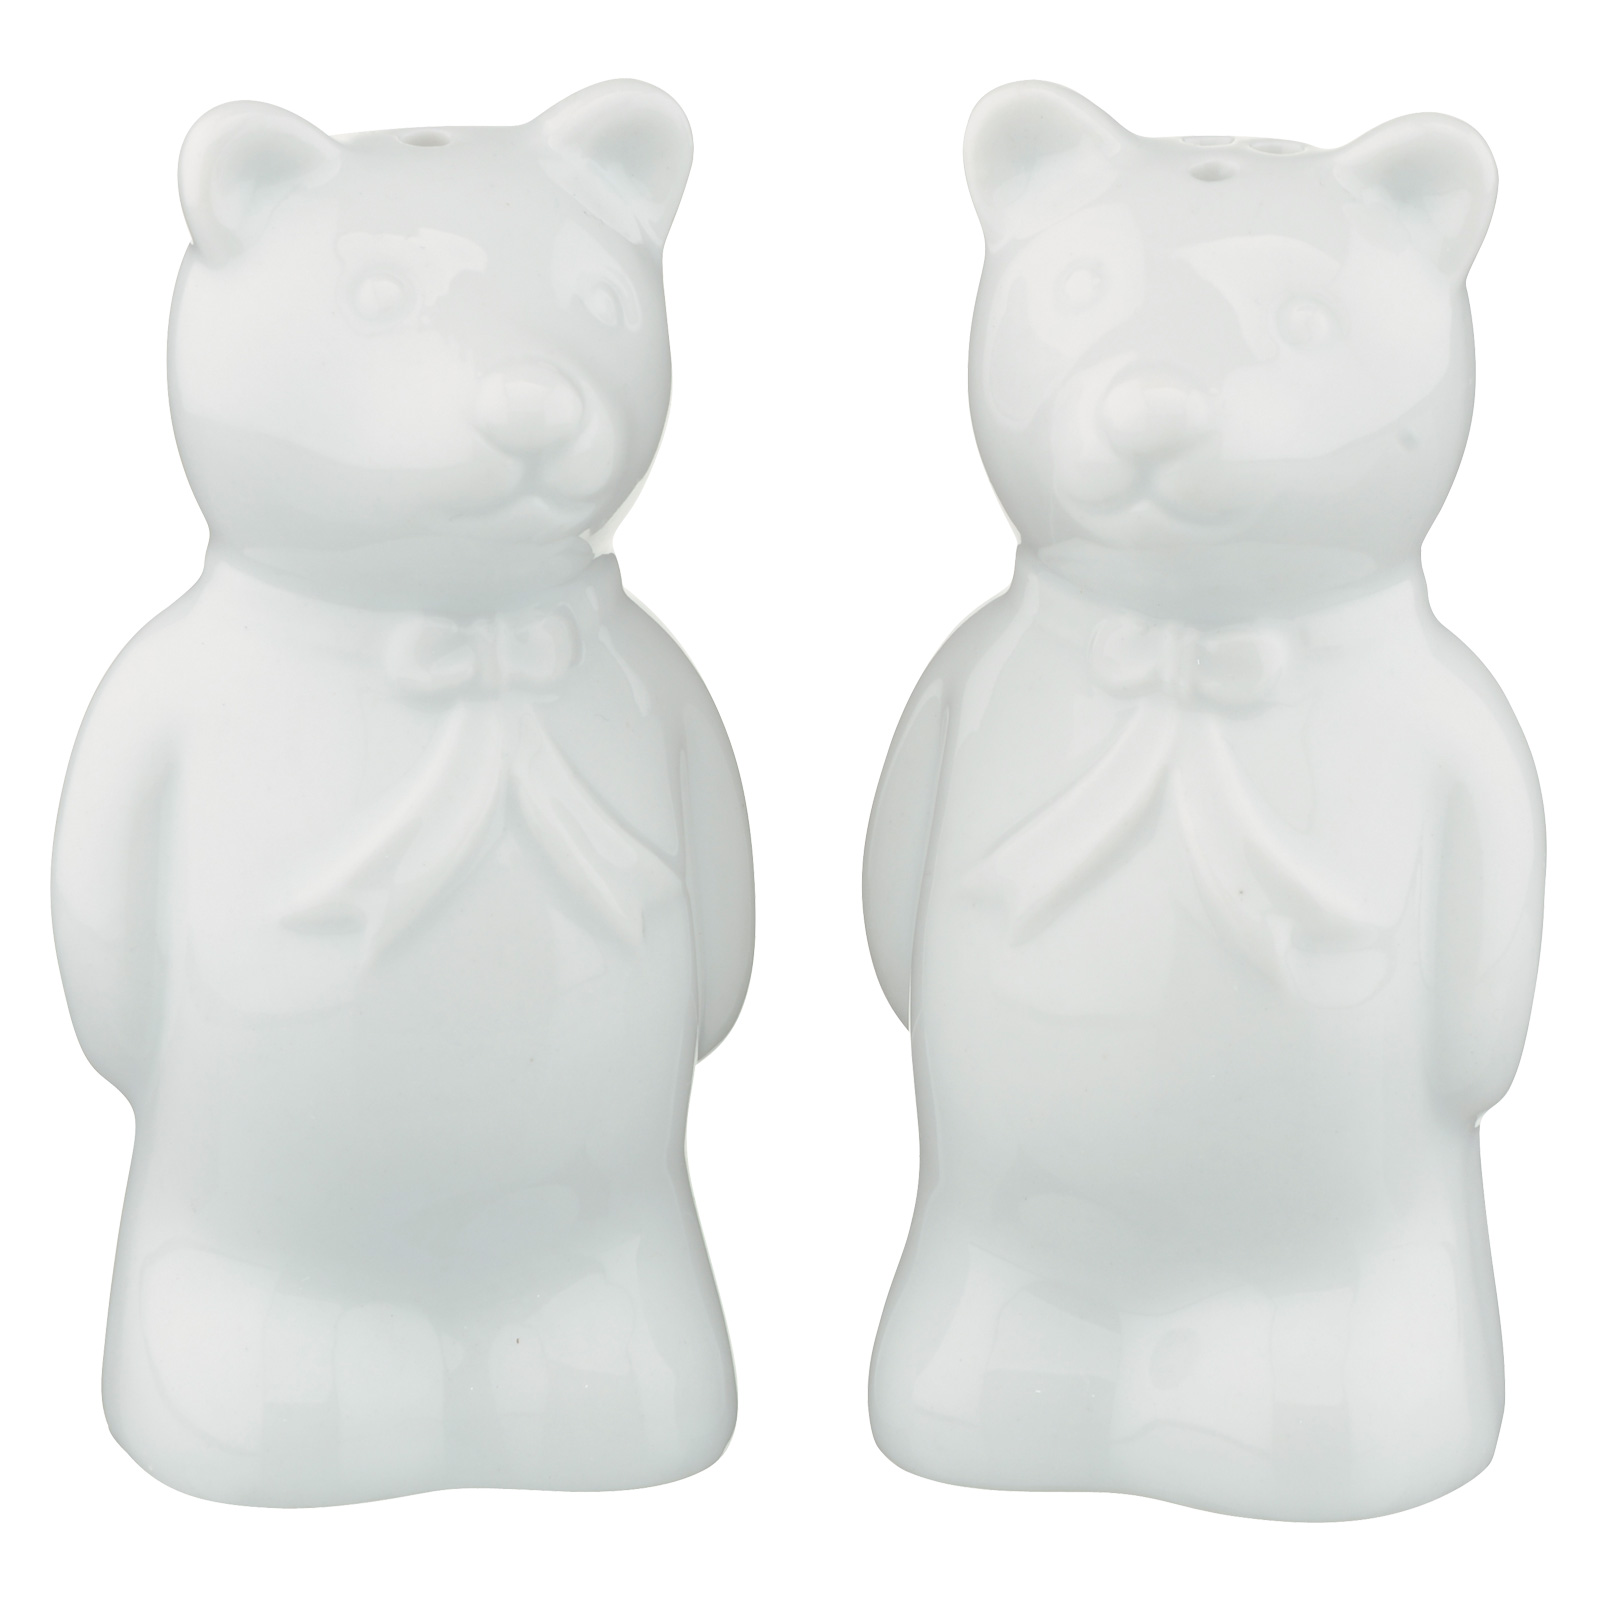 Bear Salt & Pepper Shakers by BIA